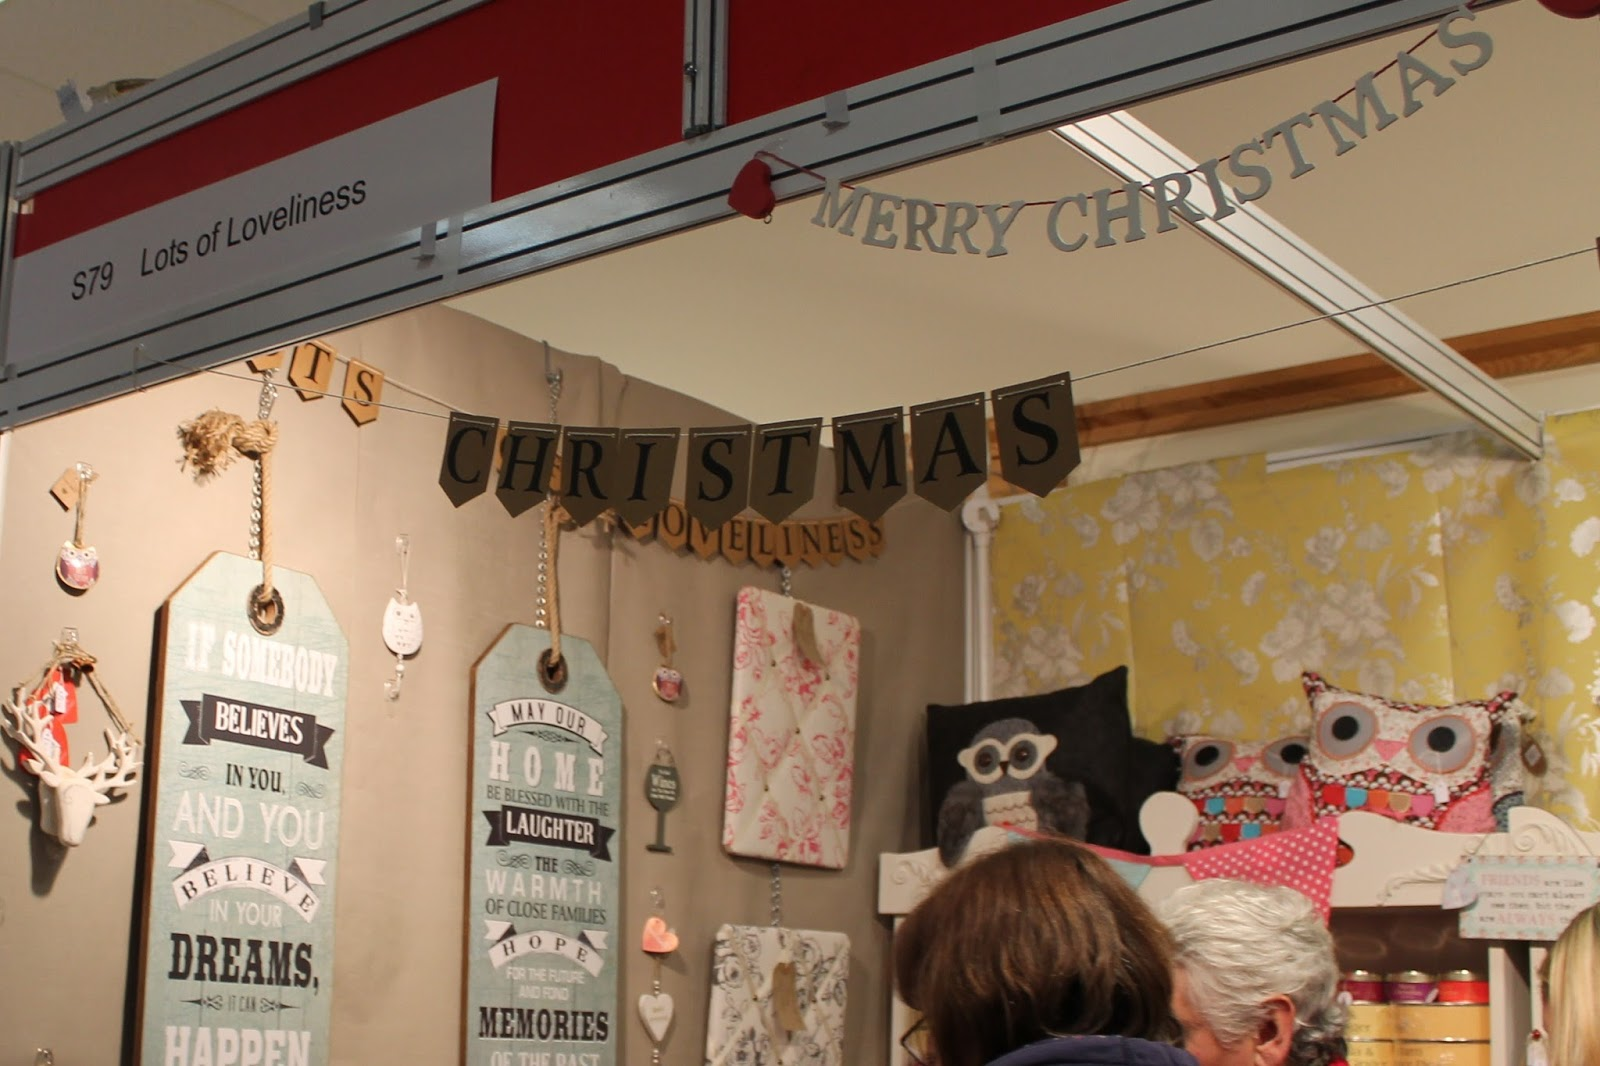 Living North Christmas Fair at Newcastle Racecourse - Lots of Loveliness